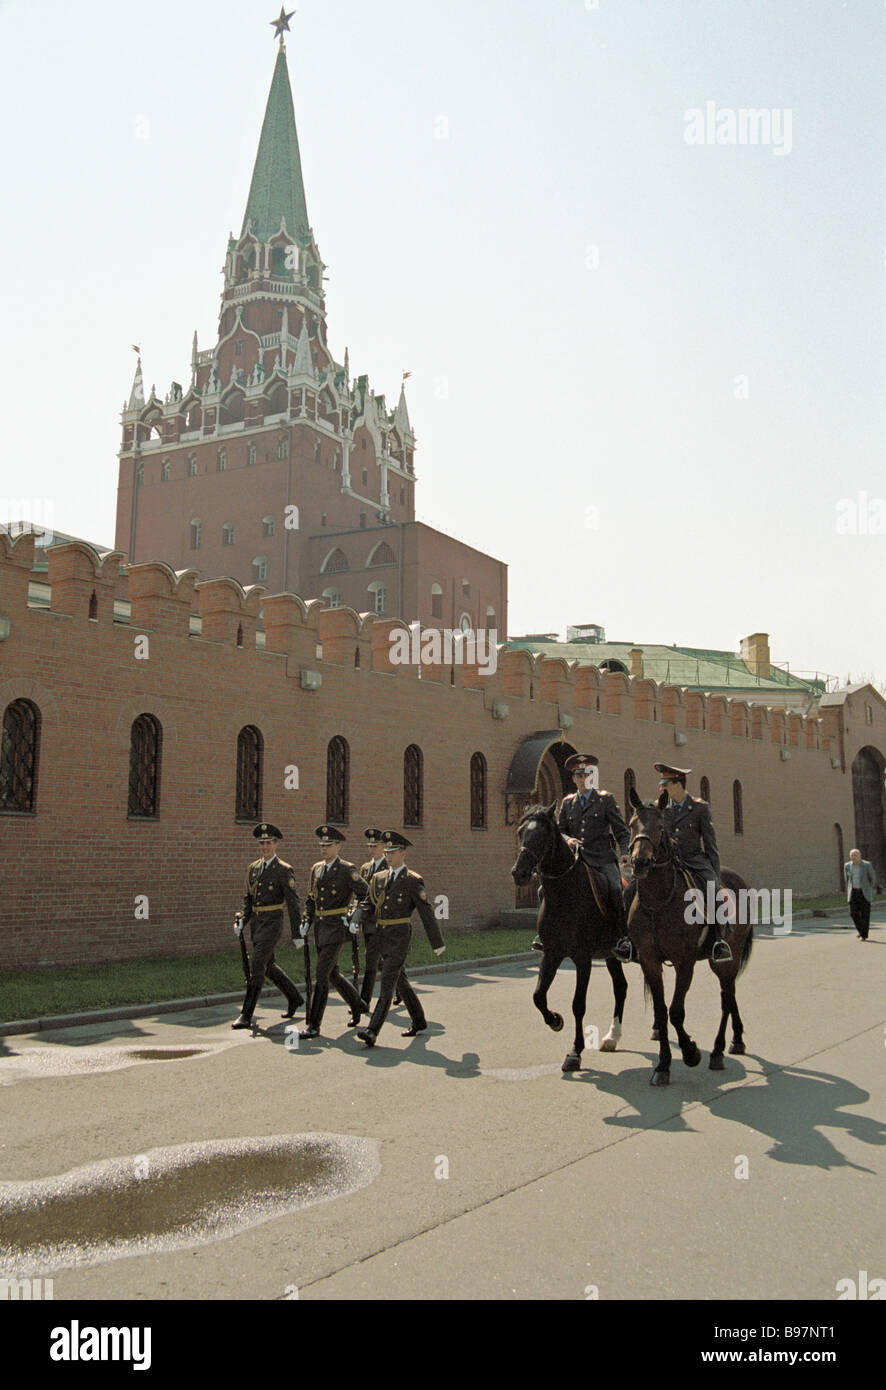 Guards of honor standing next to the Kremlin wall - Stock Image